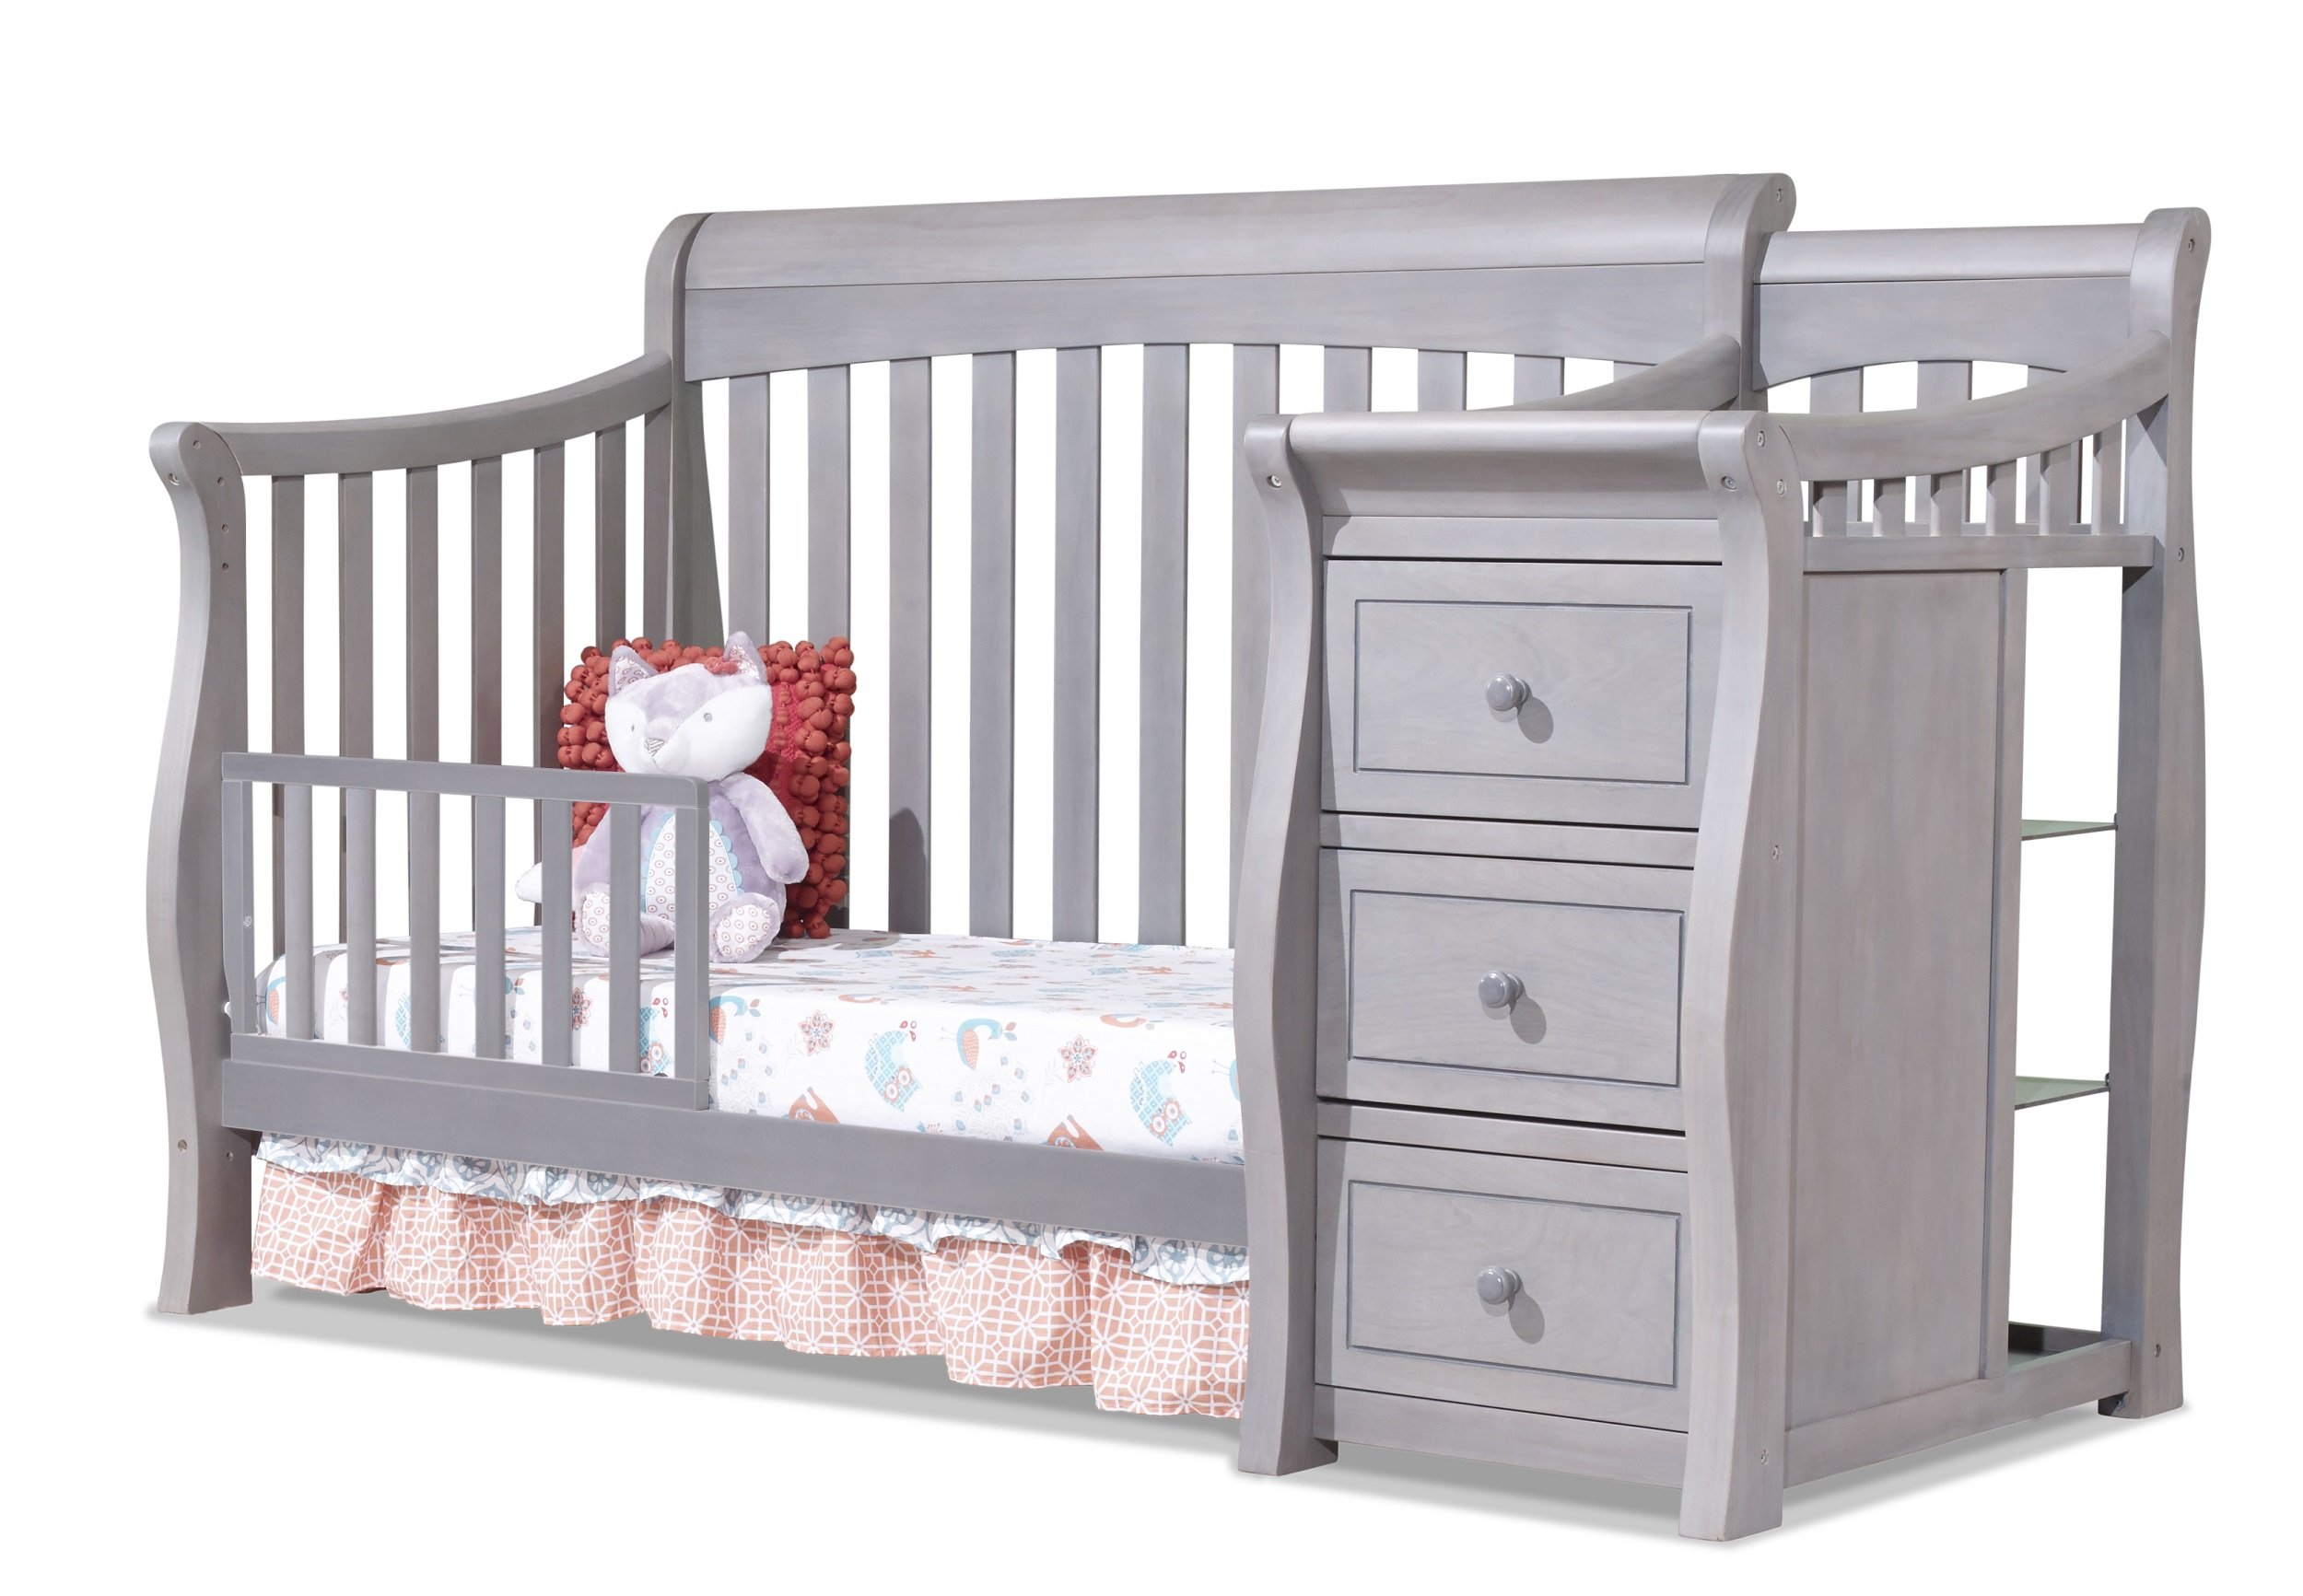 Sorelle Tuscany Toddler Rail, Weathered Gray by Sorelle (Image #1)